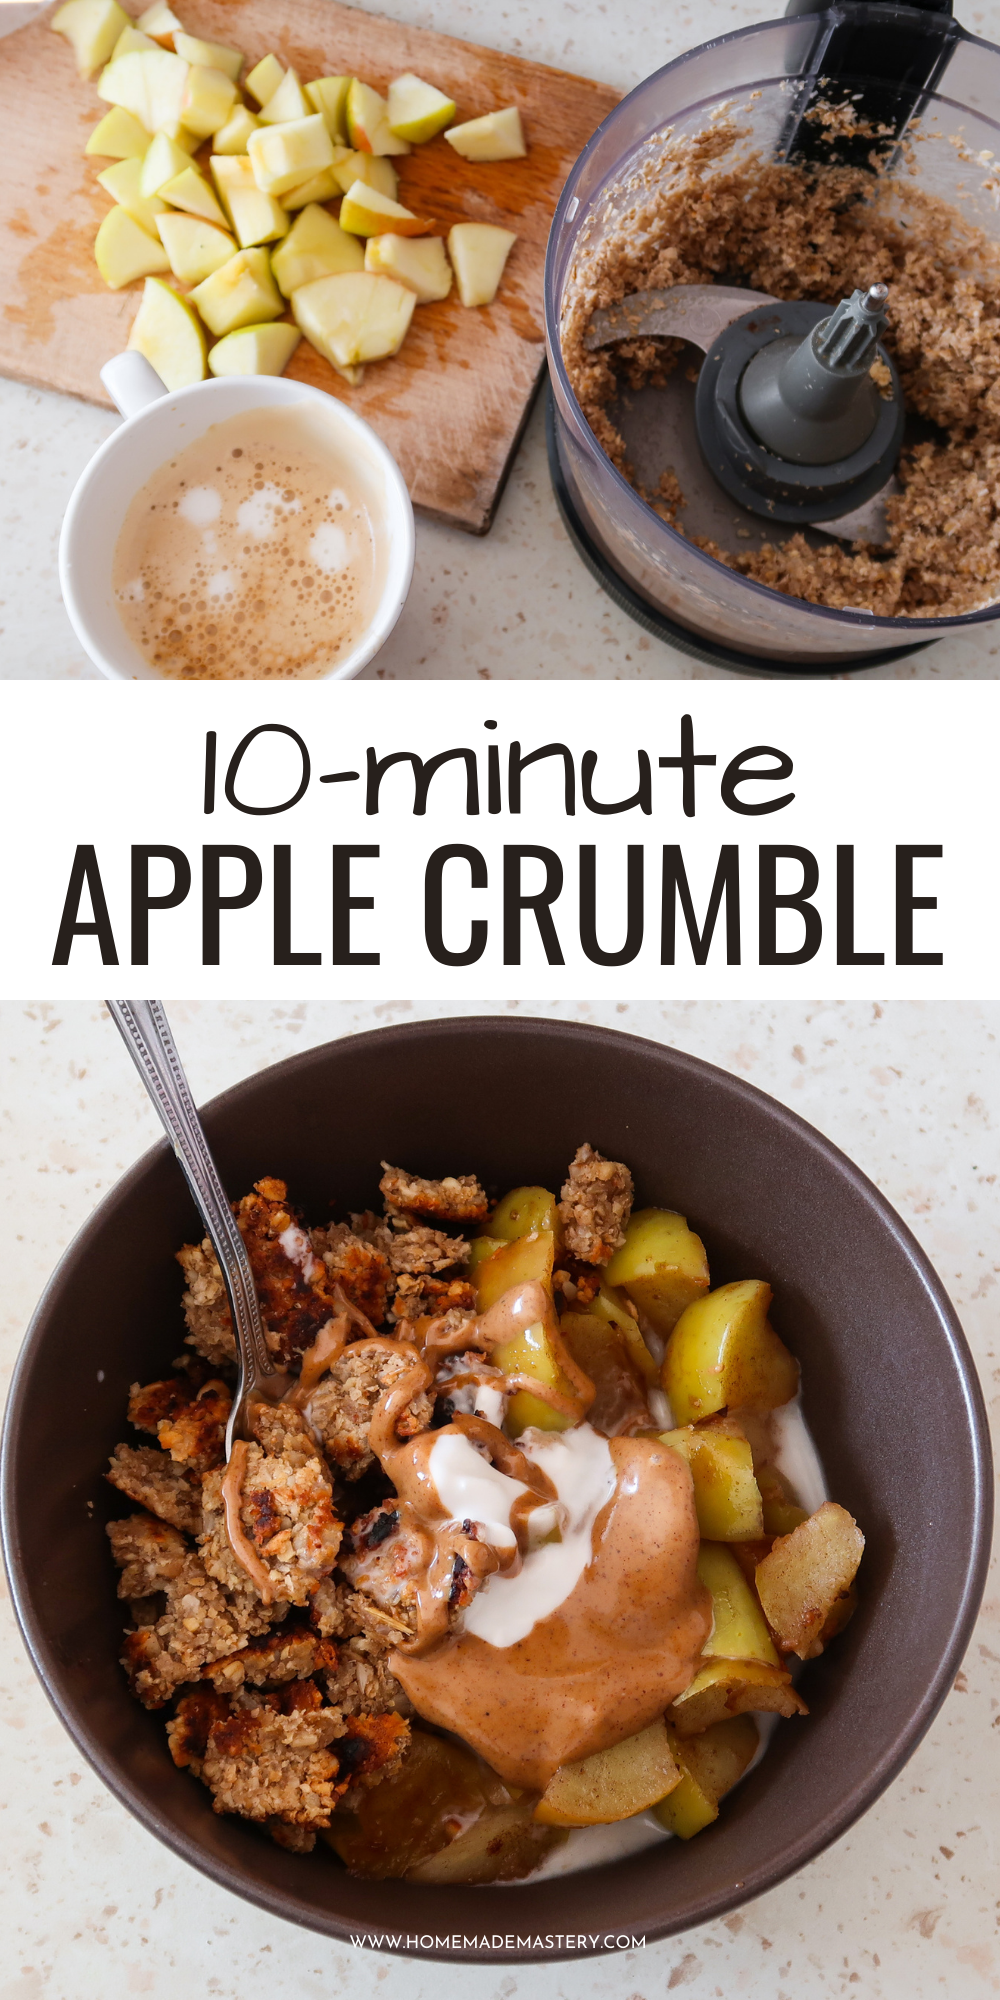 You can make this apple breakfast bowl in just about 10 minutes.